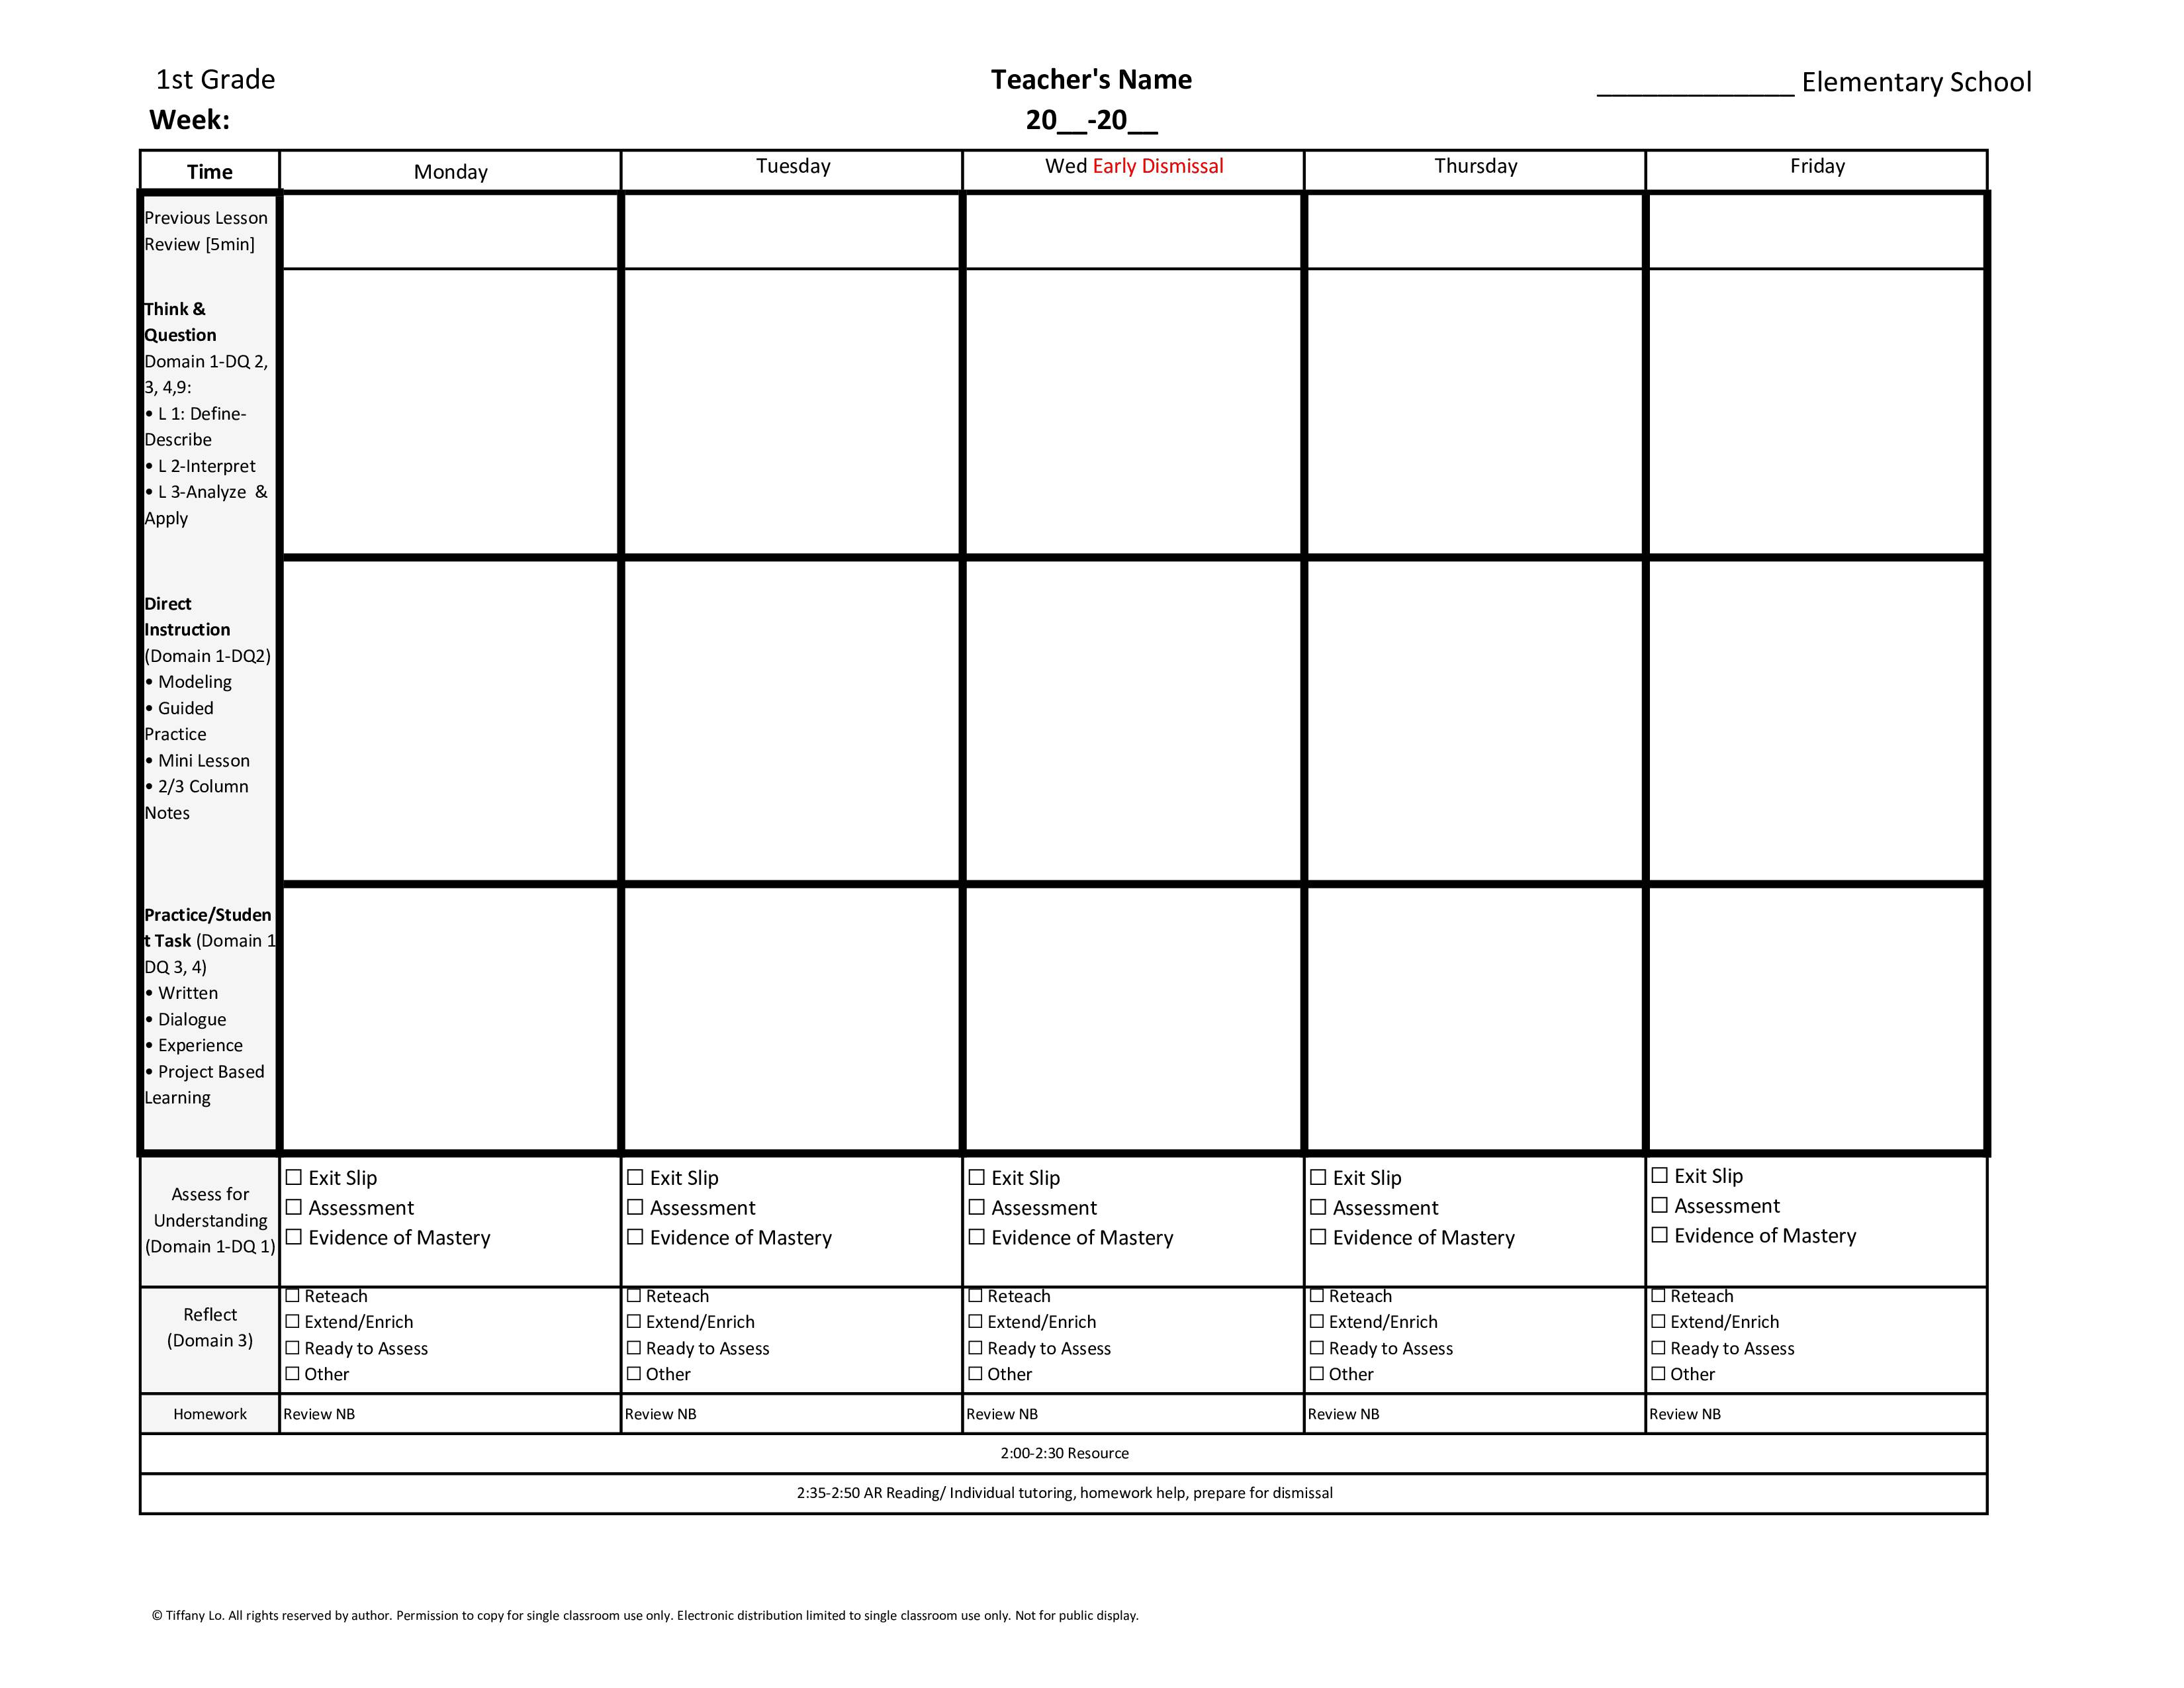 1st First Grade Weekly Lesson Plan Template W Florida